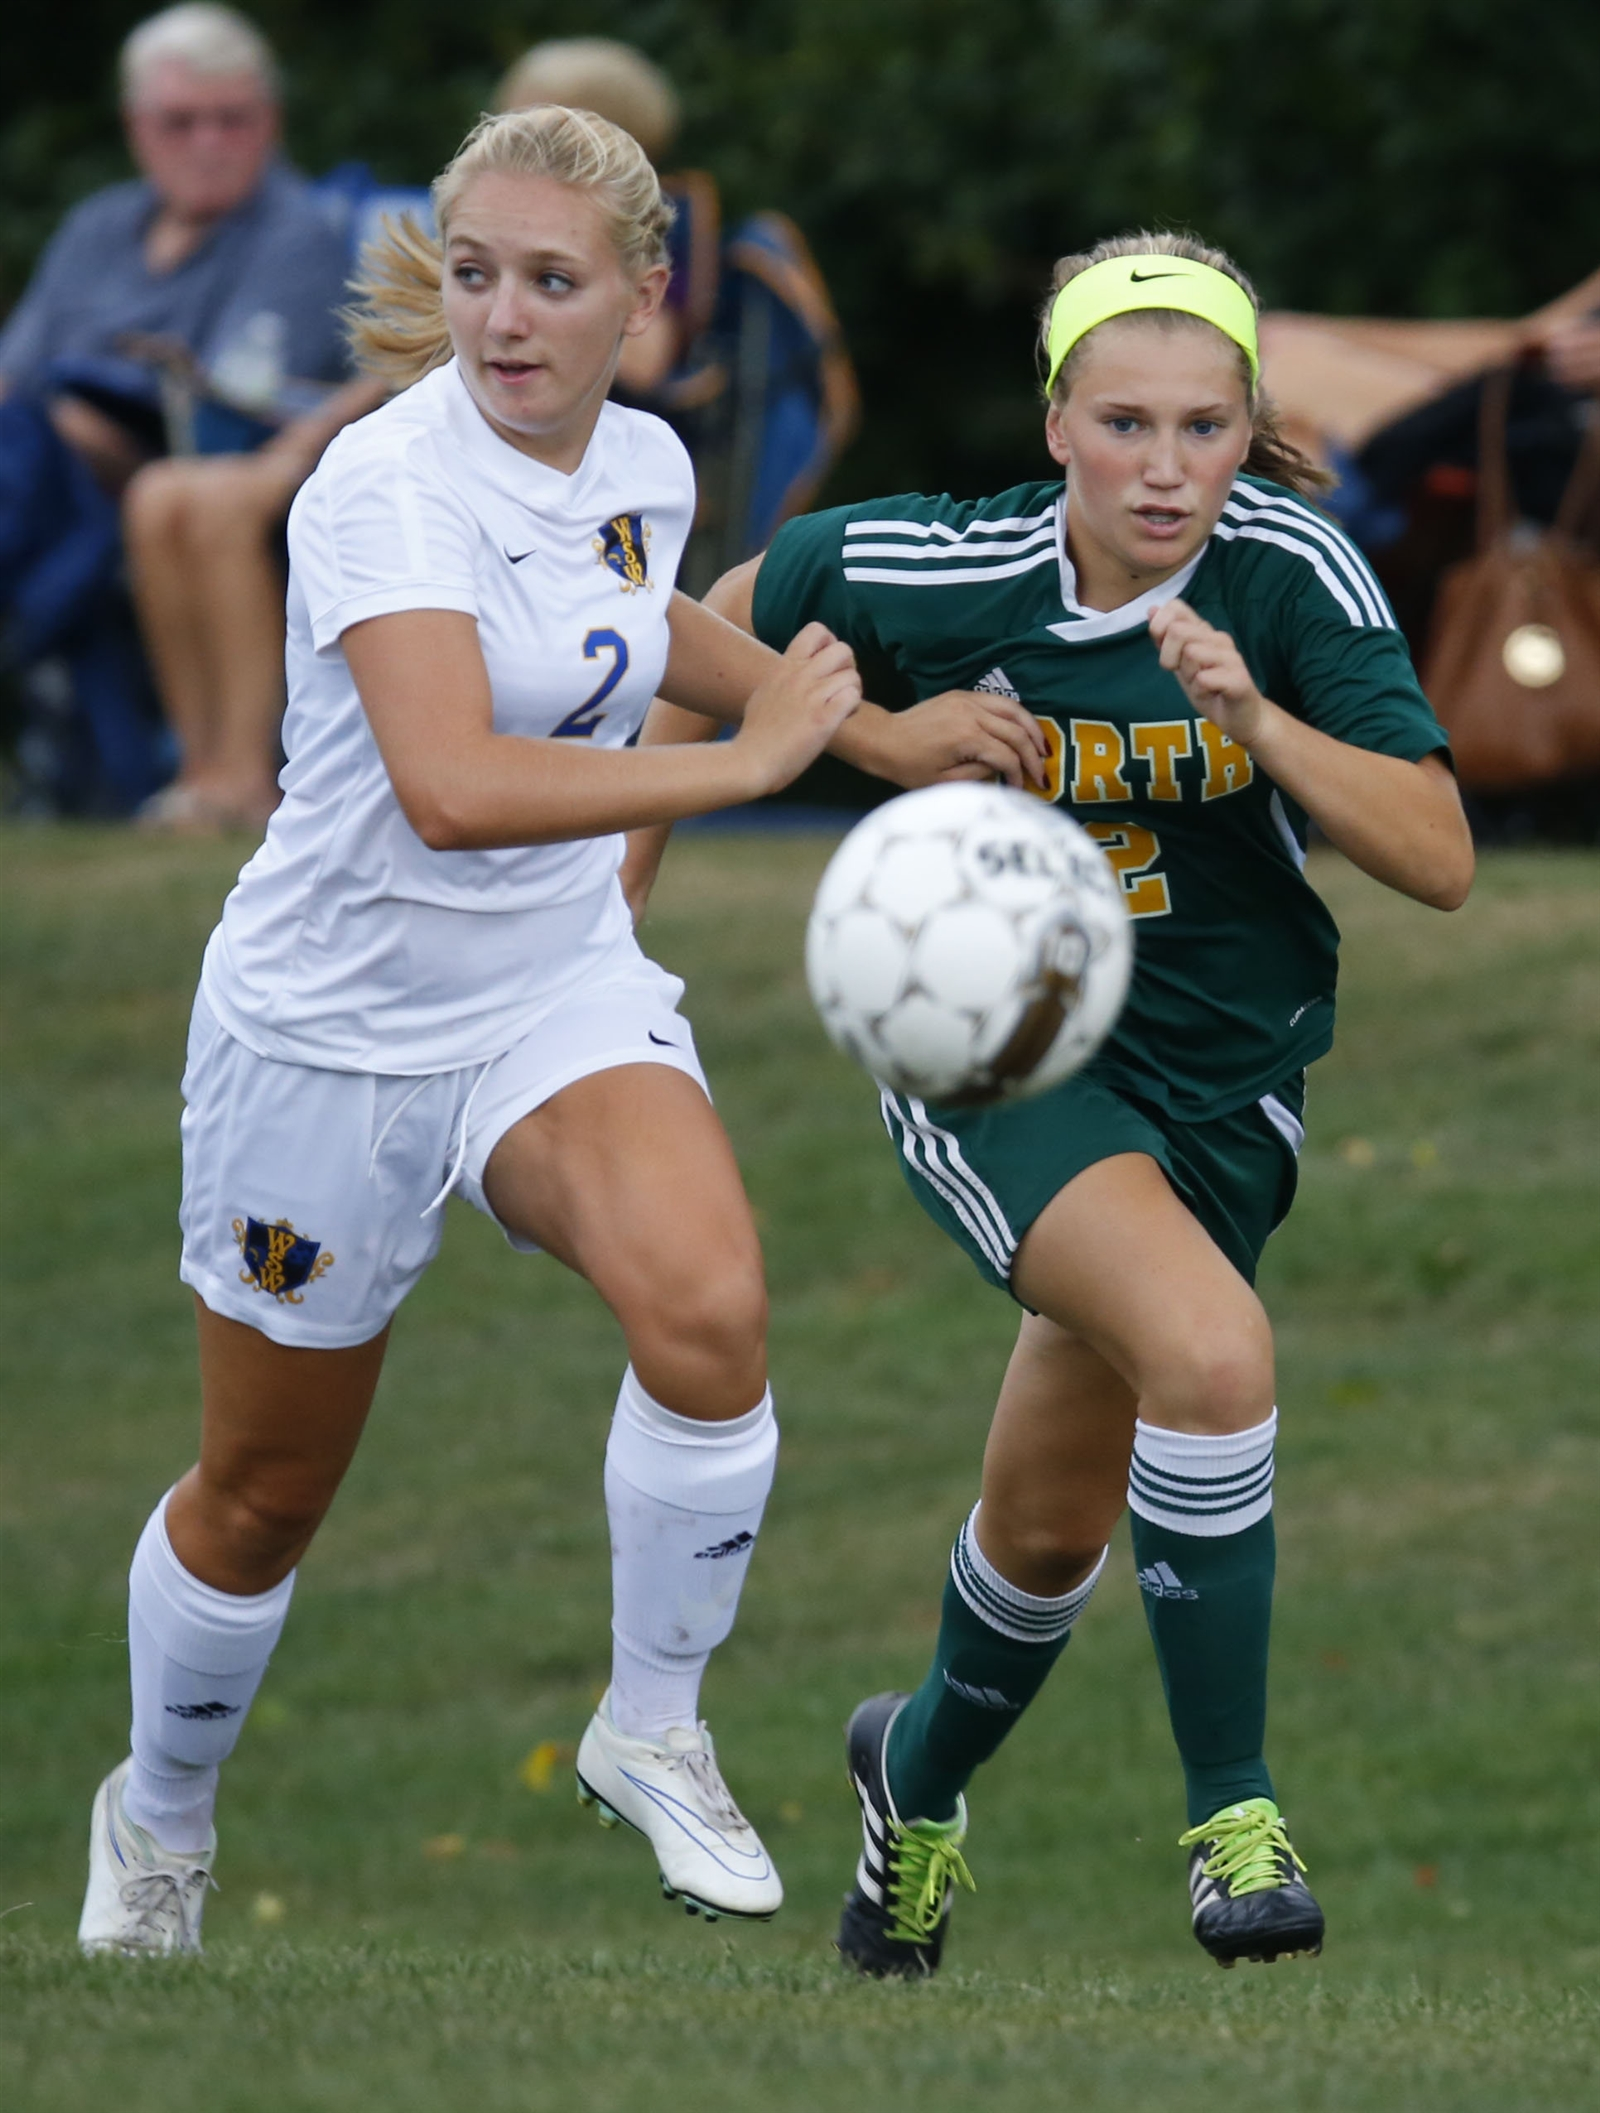 West Seneca West's Cassie Siwy and Williamsville North's Lianna Van Sice battle for a loose ball during first-half action at the West Seneca Soccer complex on Thursday, Sept. 8, 2016.